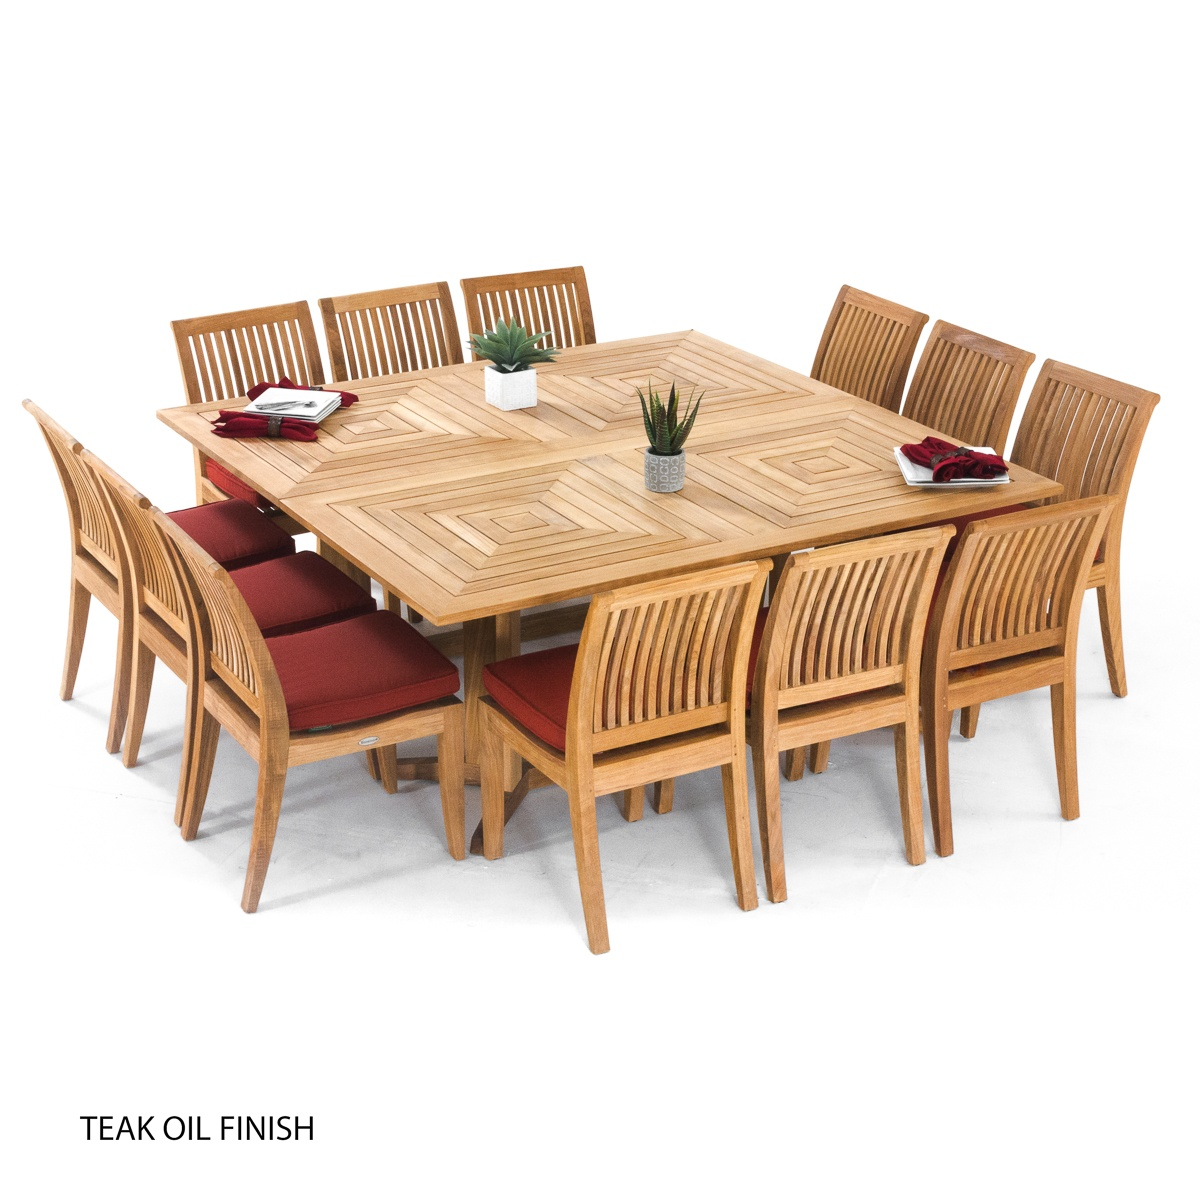 Large Teak Dining Set For 12 People